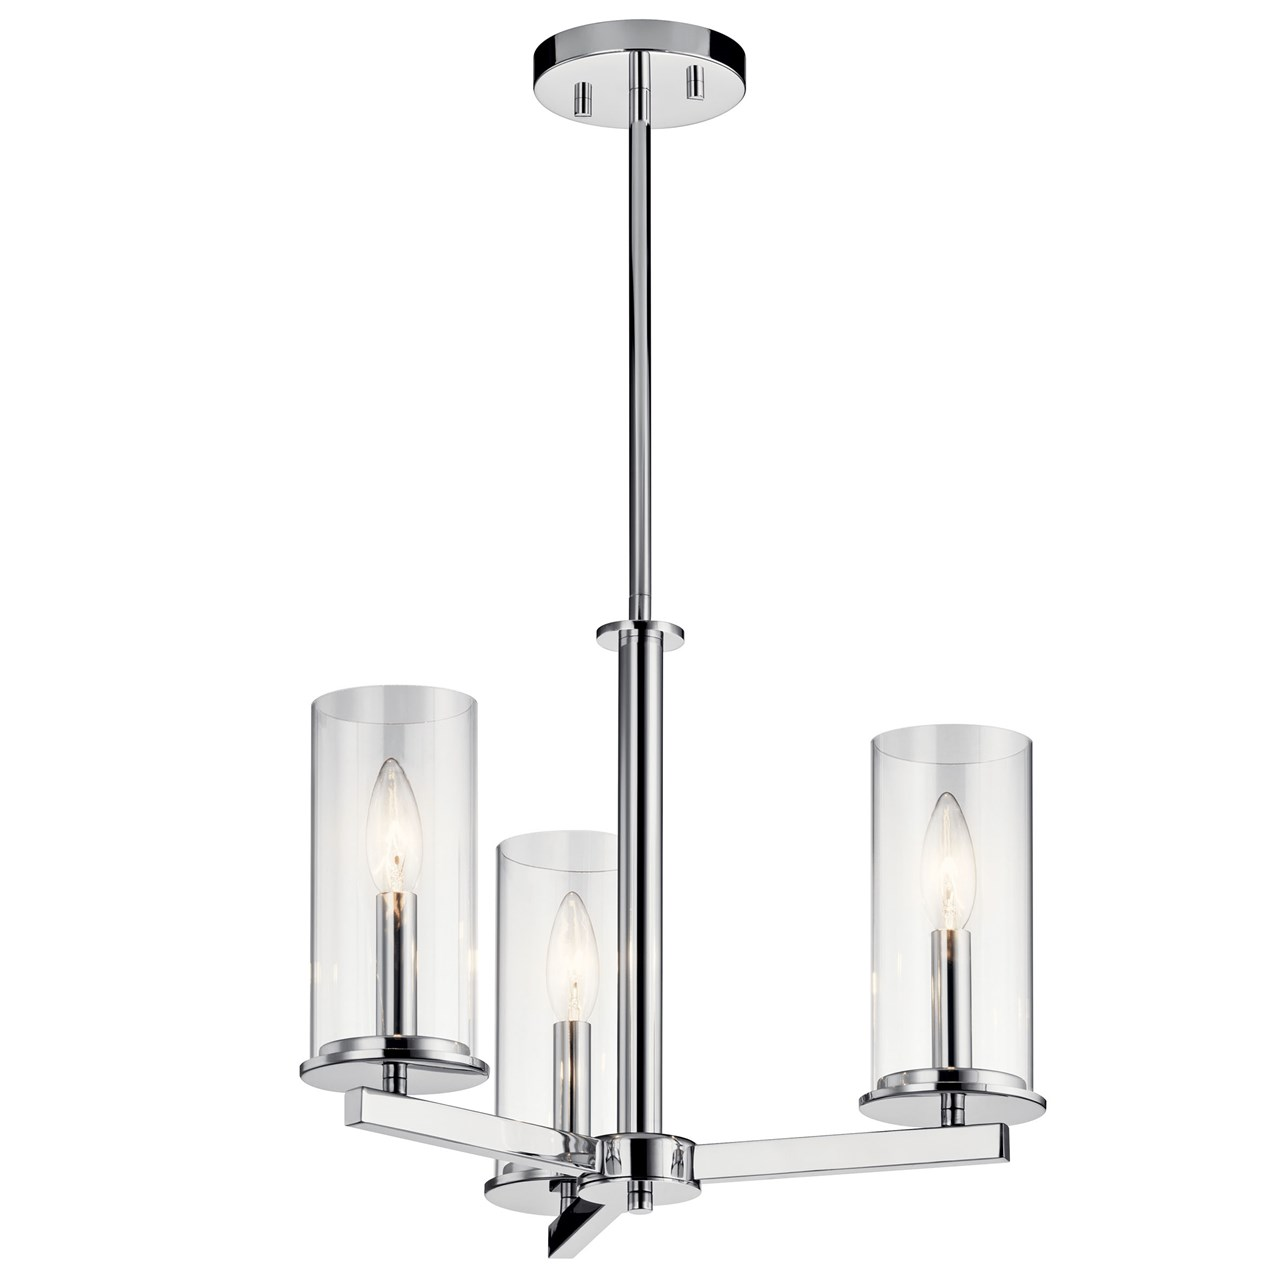 Crosby™ 3 Light Convertible Chandelier Chrome